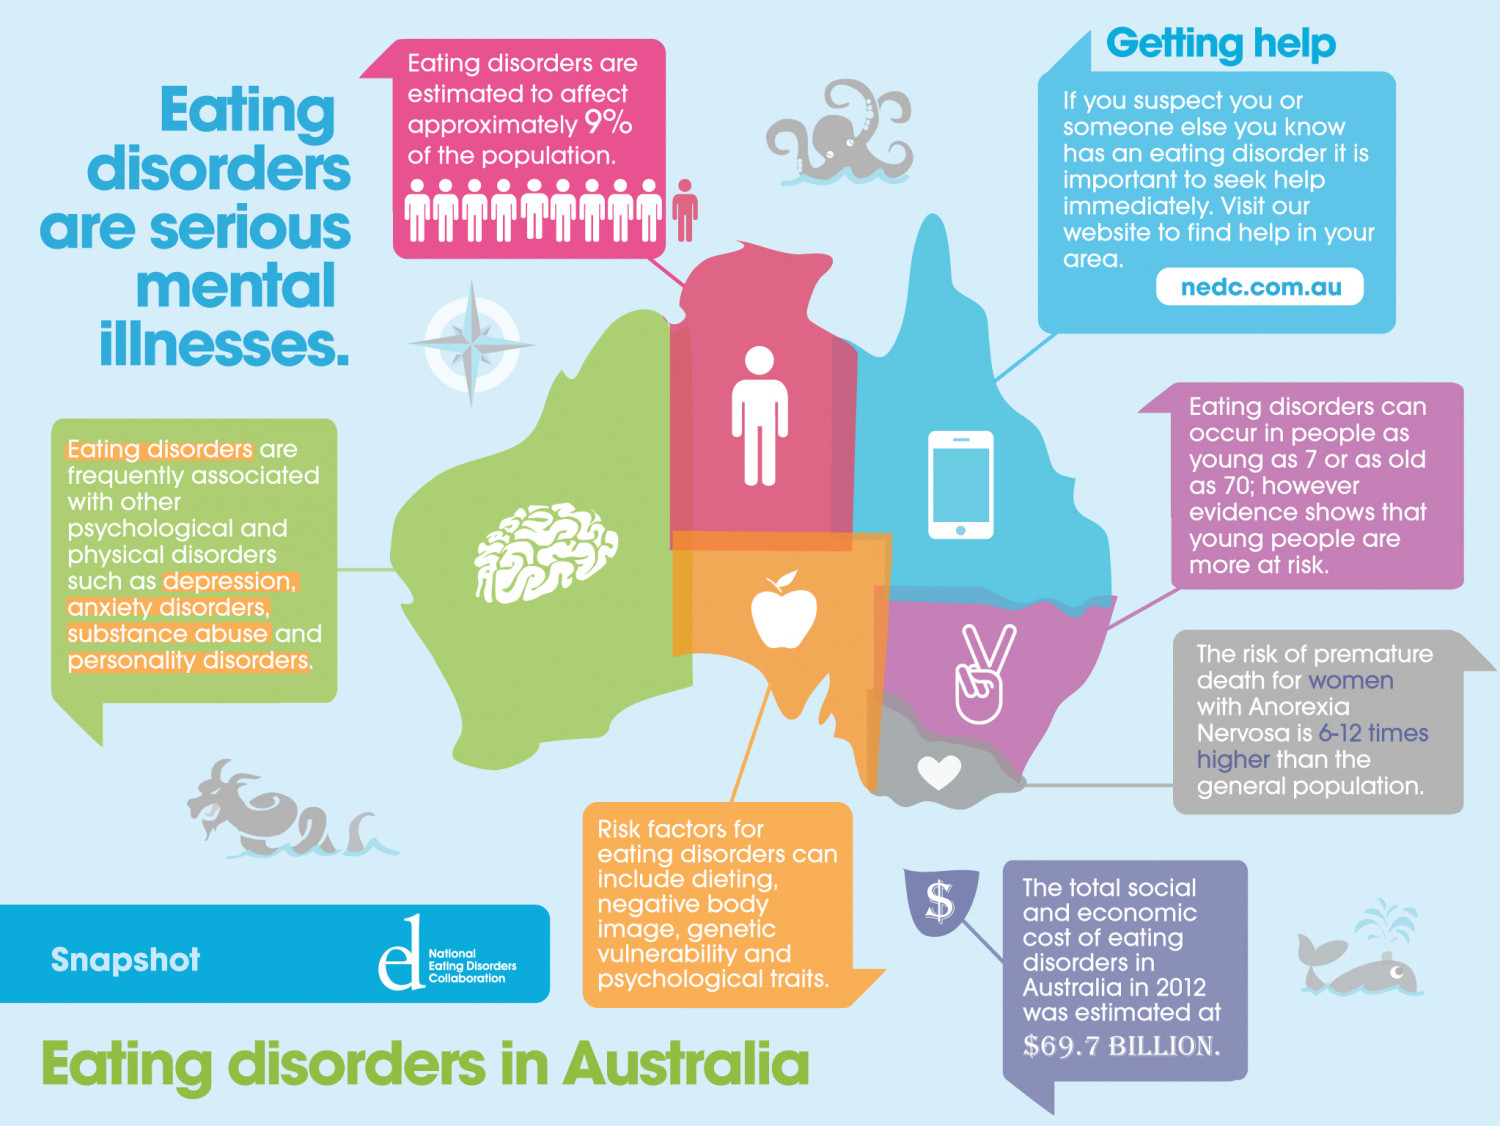 eating disorders personal or social problem There is more to eating disorders than inherited genetics, personality and coping deficits these factors interact in a complex way with various family/environmental issues to play an important role in creating and maintaining eating disorders.